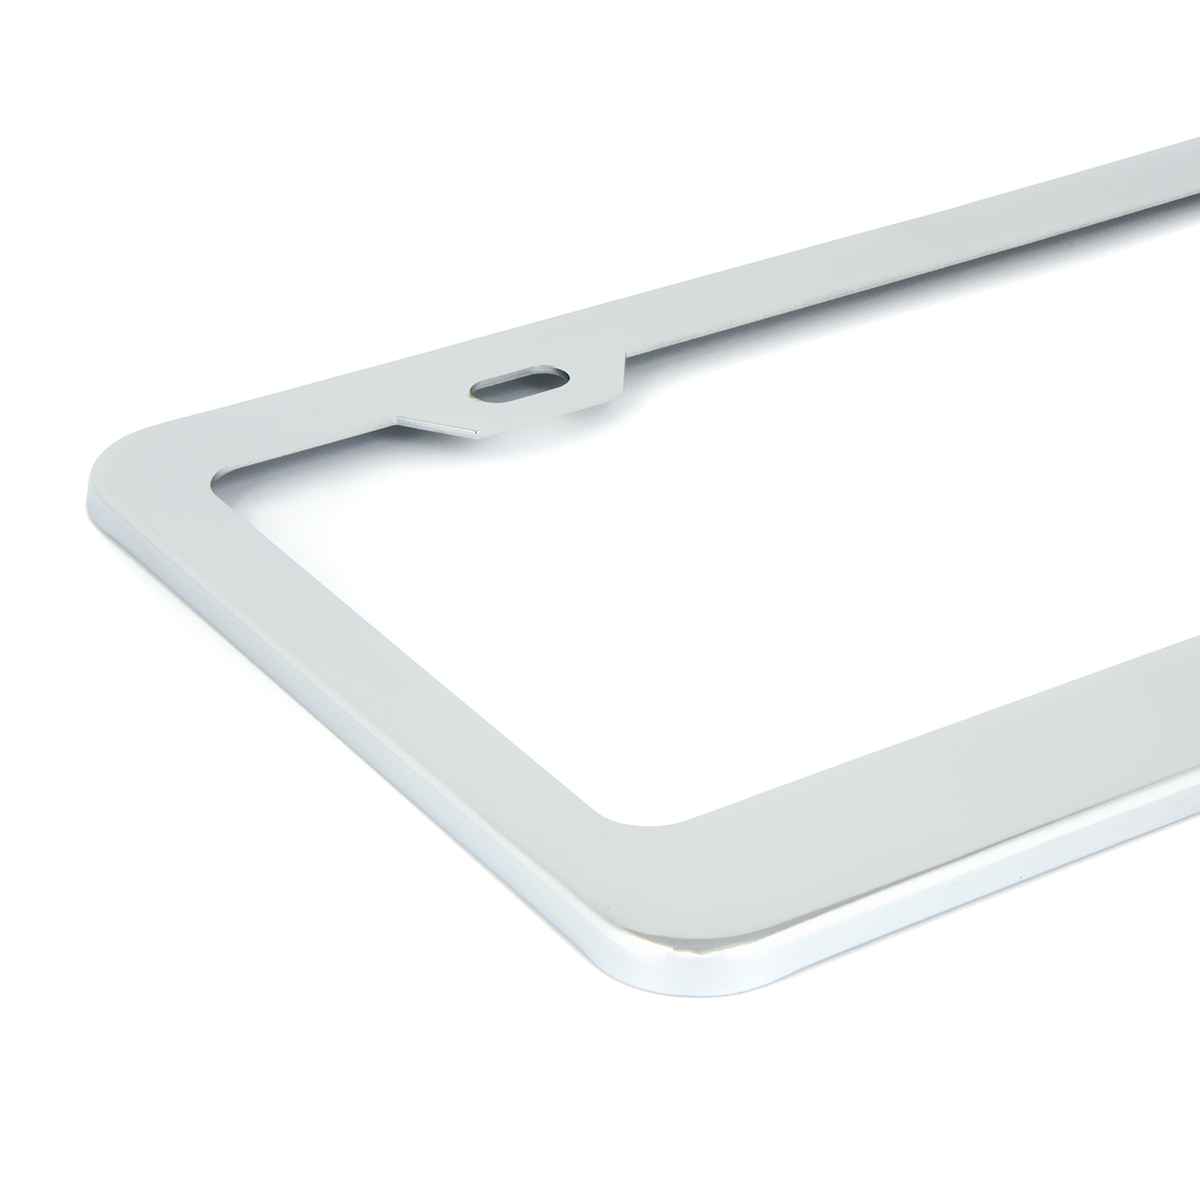 Chrome Plated Steel USA License Plate Frame - Close Up View